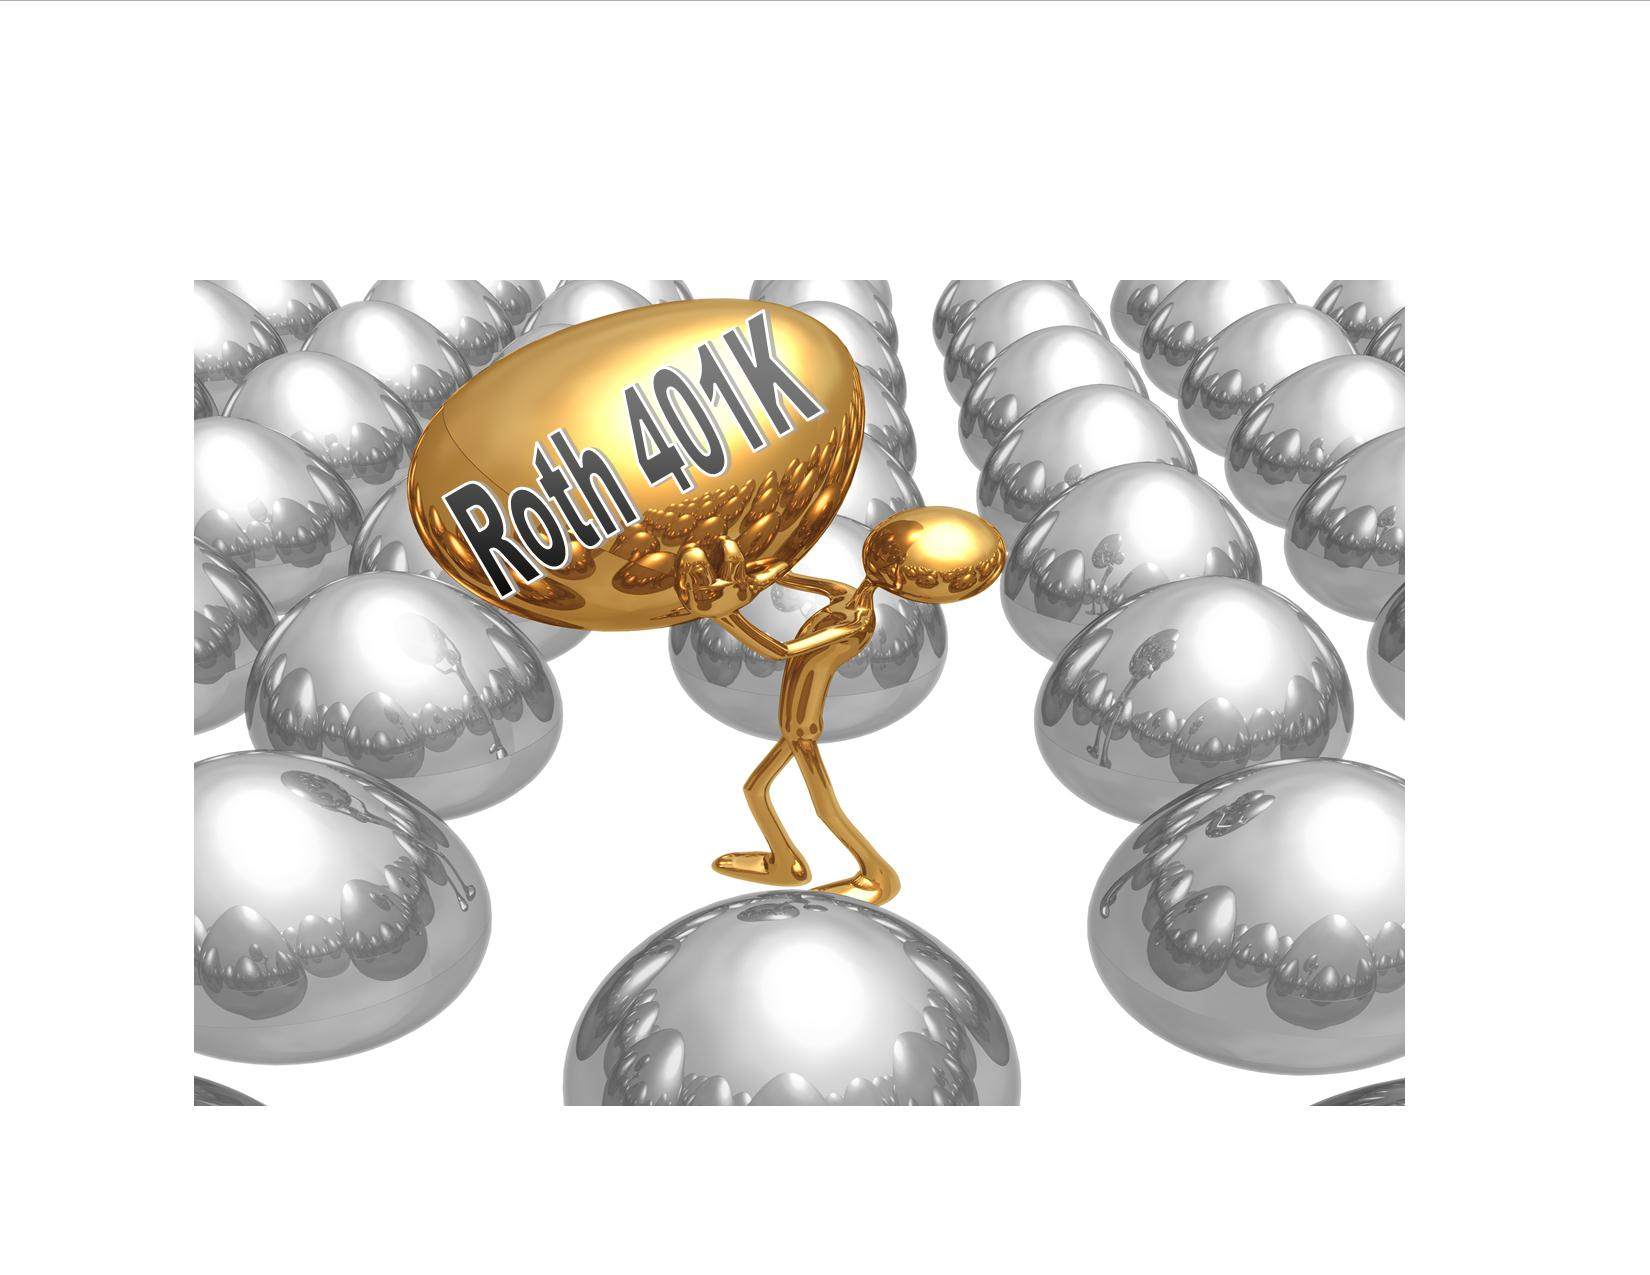 Roth 401(k)s Are Gaining Ground And Enhancing Retirement Readiness The Use  Of Roth 401(k)s By Retirement Plan Sponsors Has Been On The Uptick For The  Past